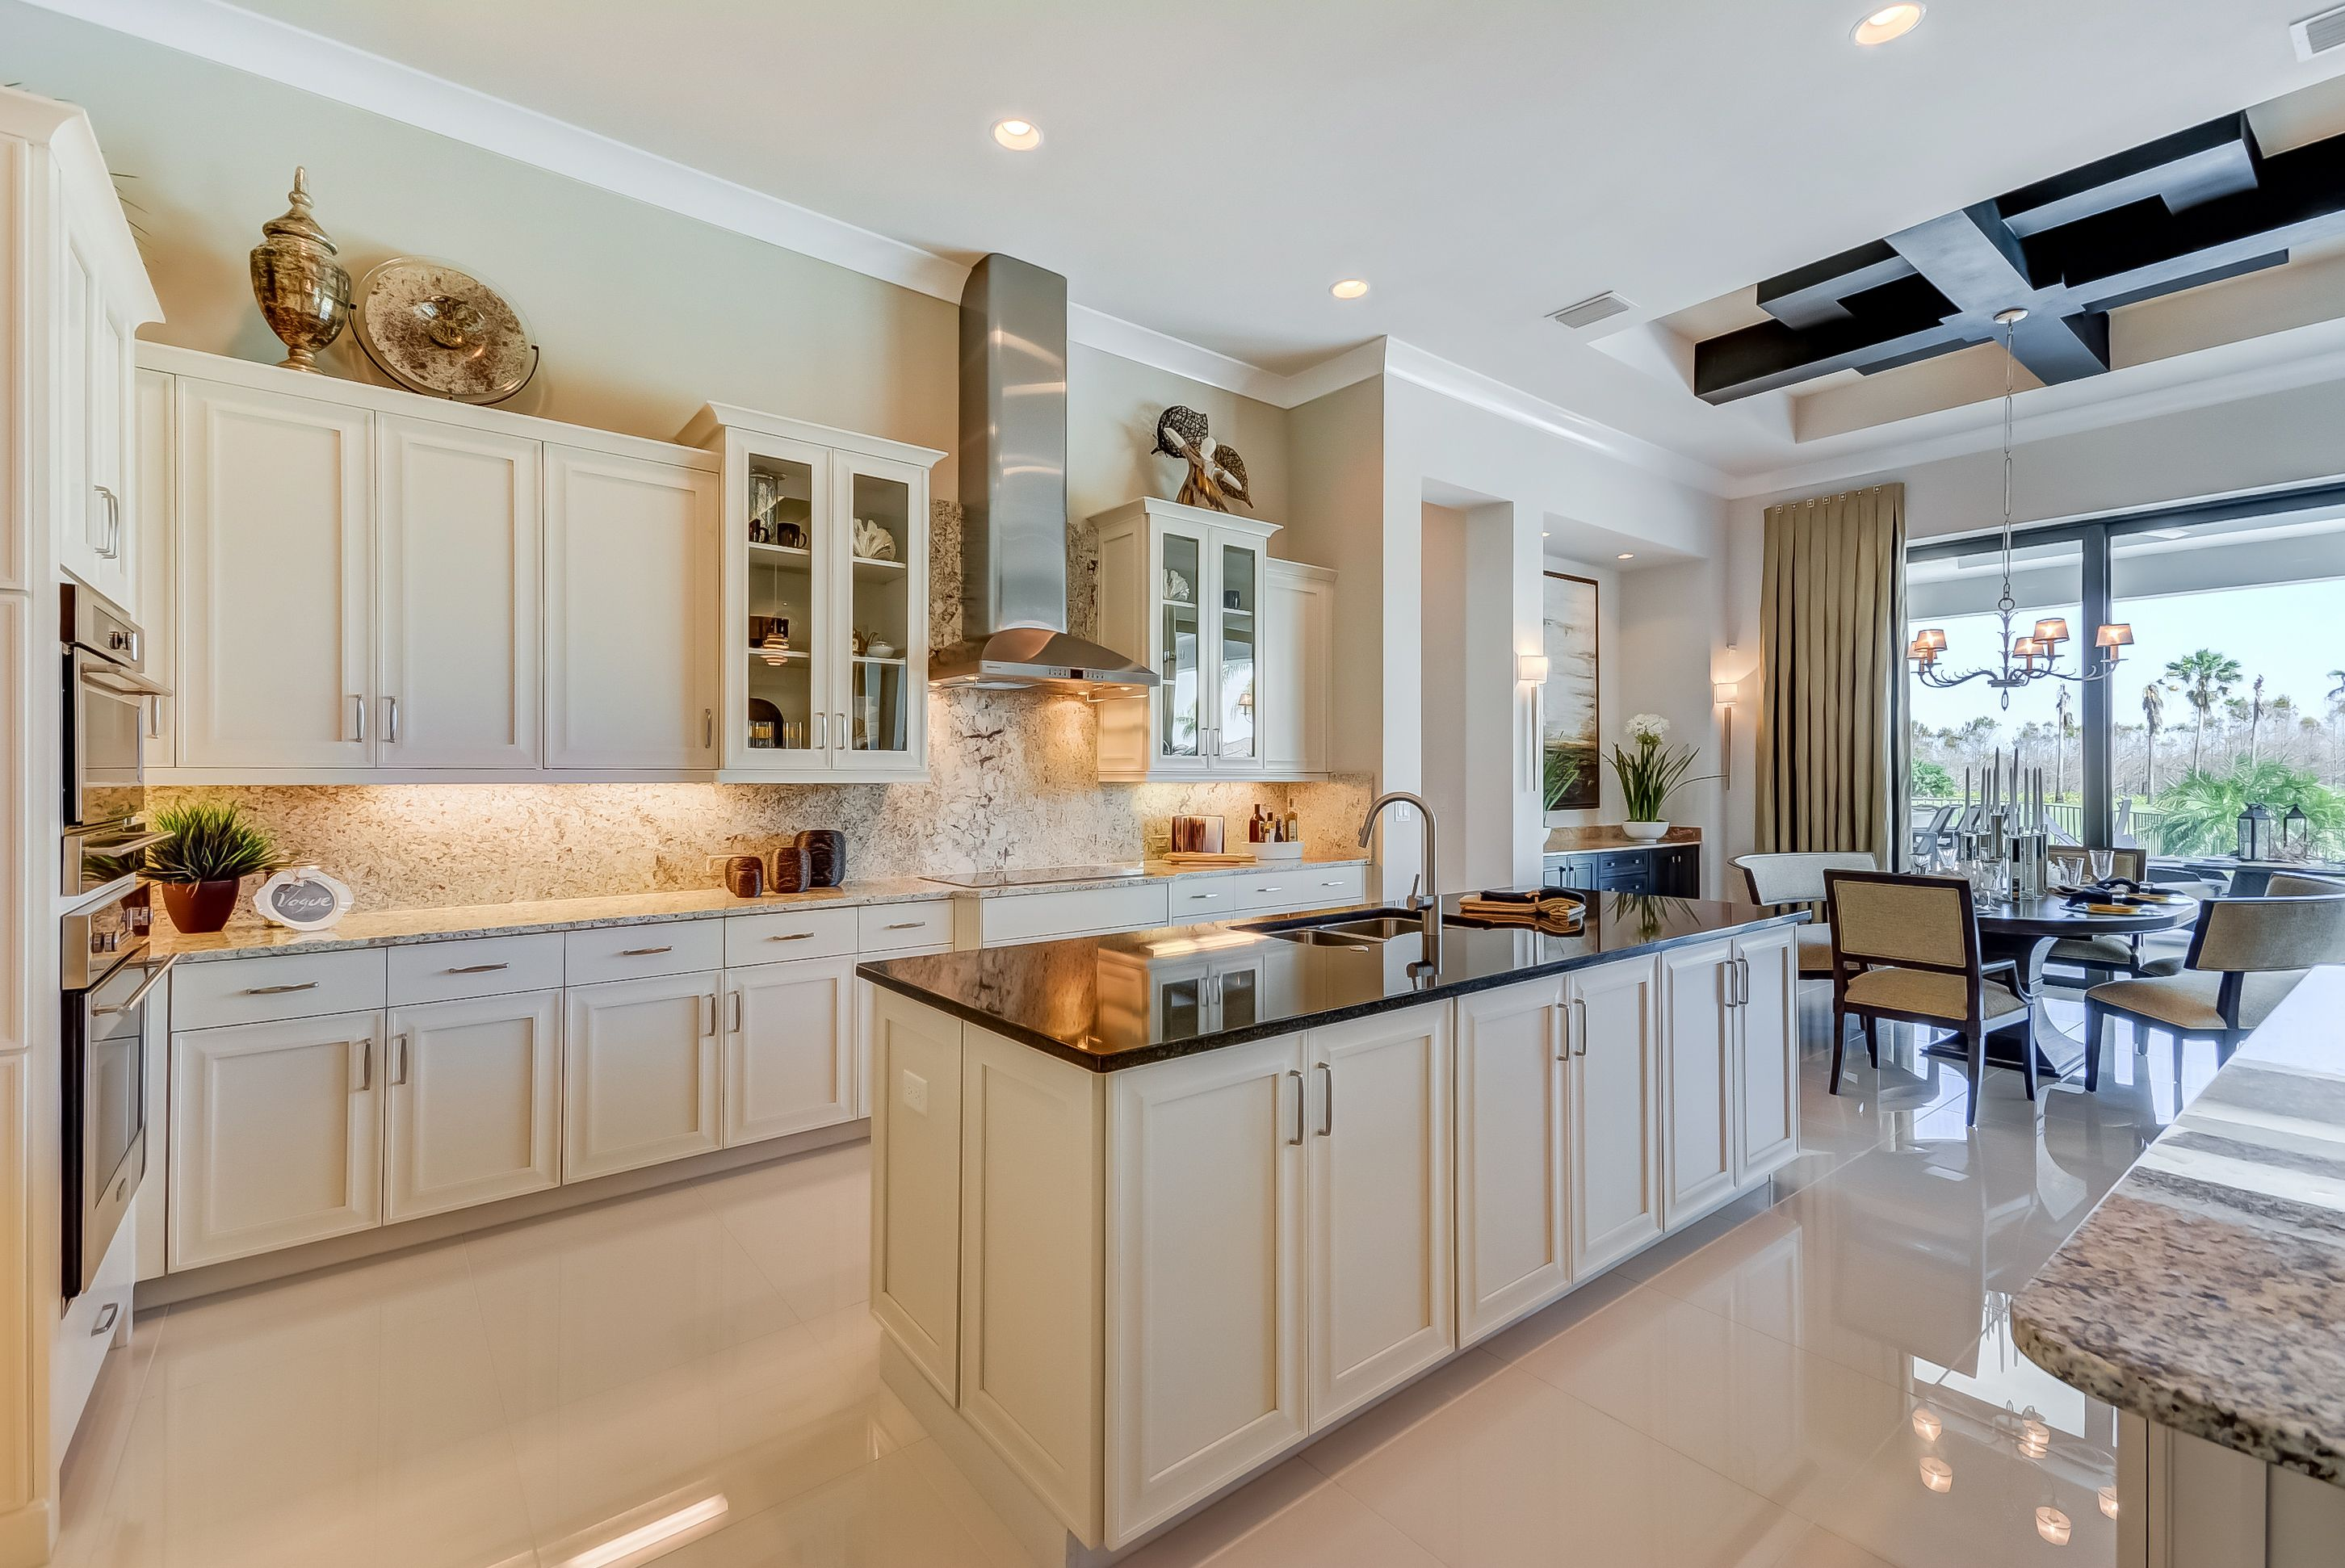 Kitchen featured in the Glenmore By Stock Development in Naples, FL